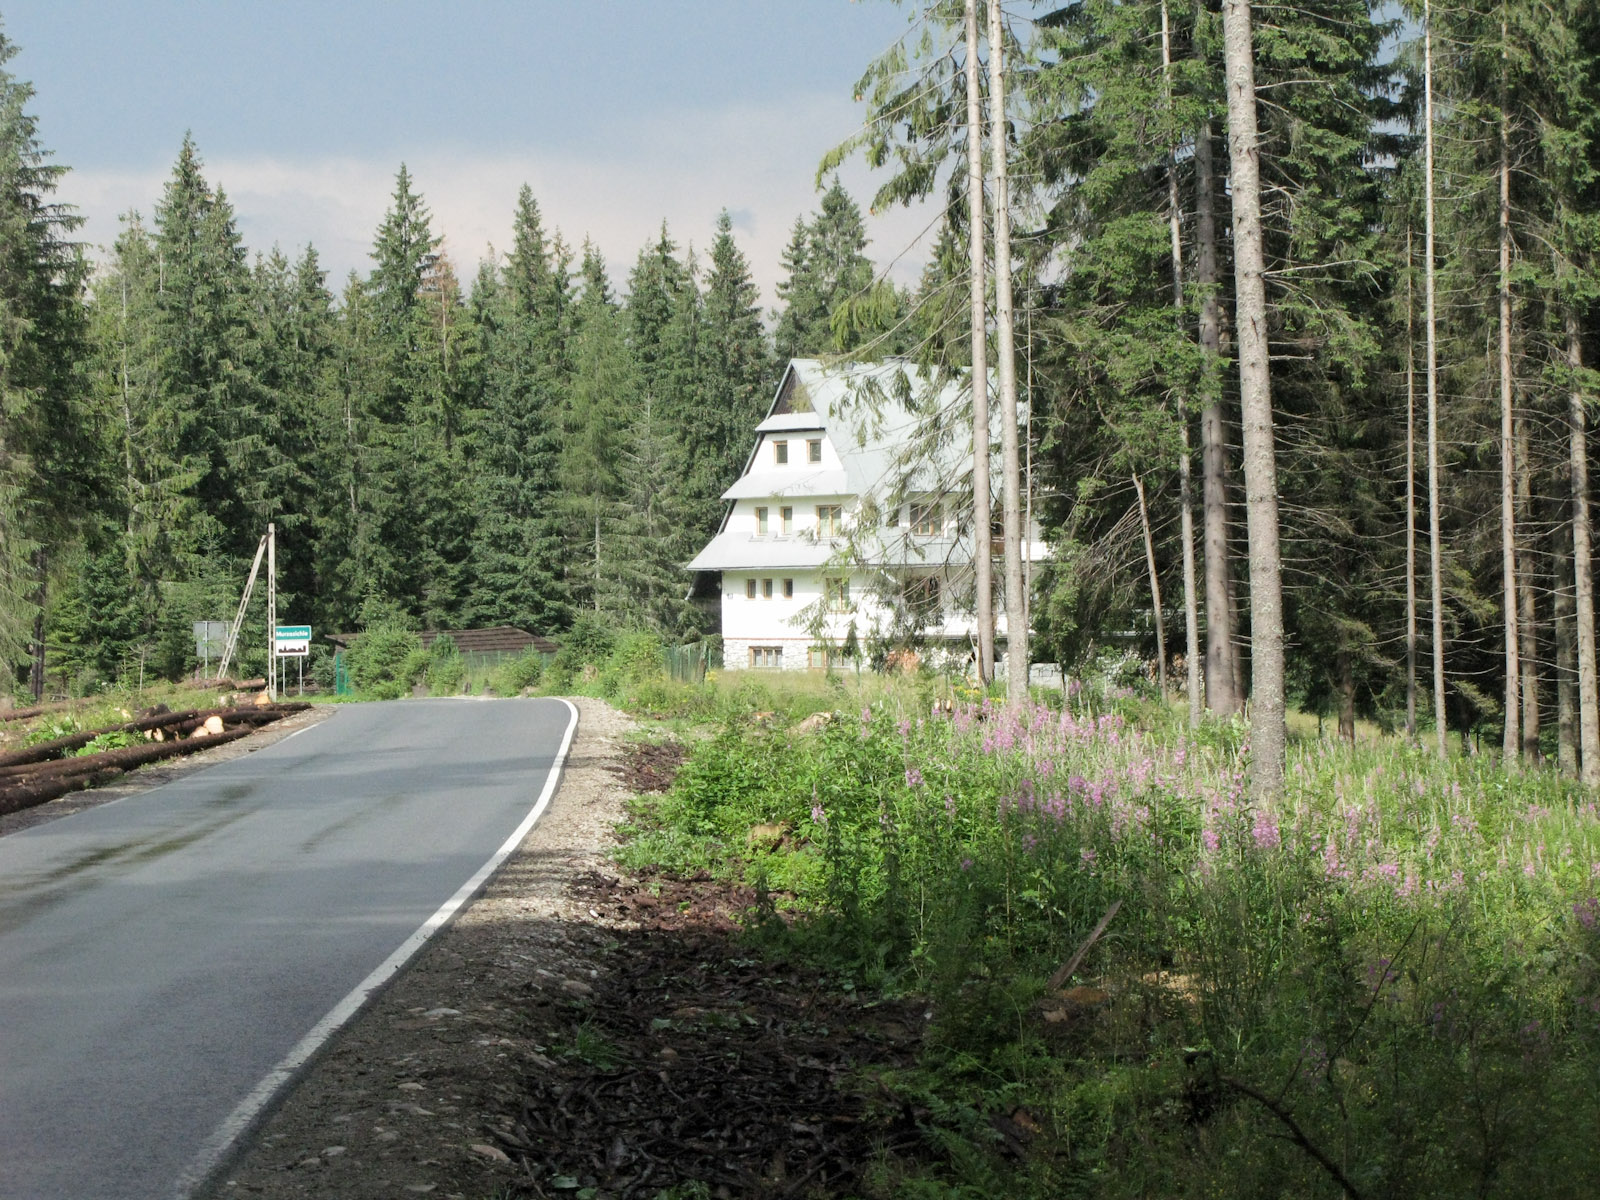 entering Murzasichle village